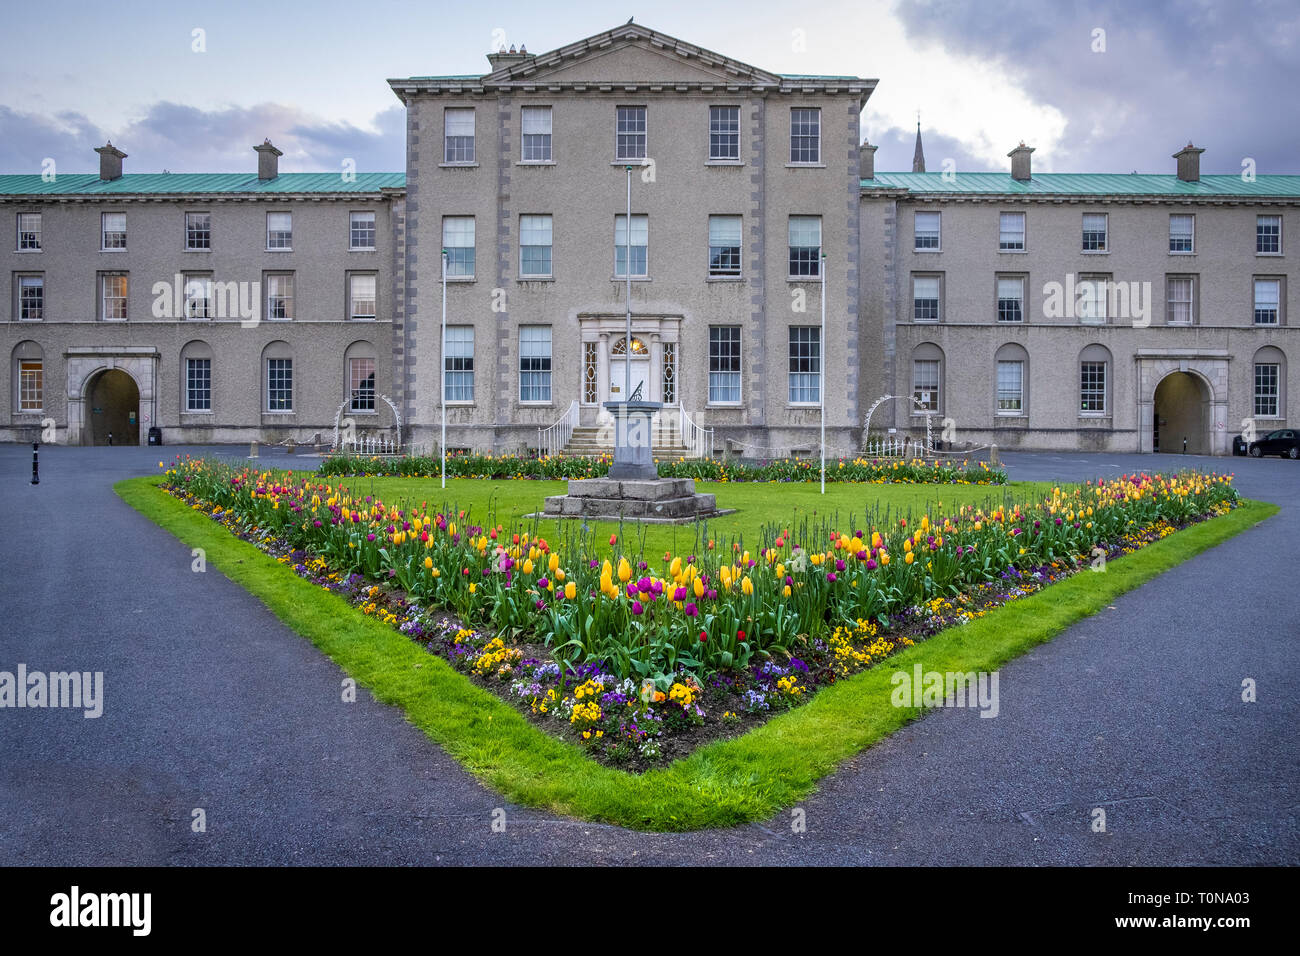 Campus and Conference Center in Maynooth - Stock Image